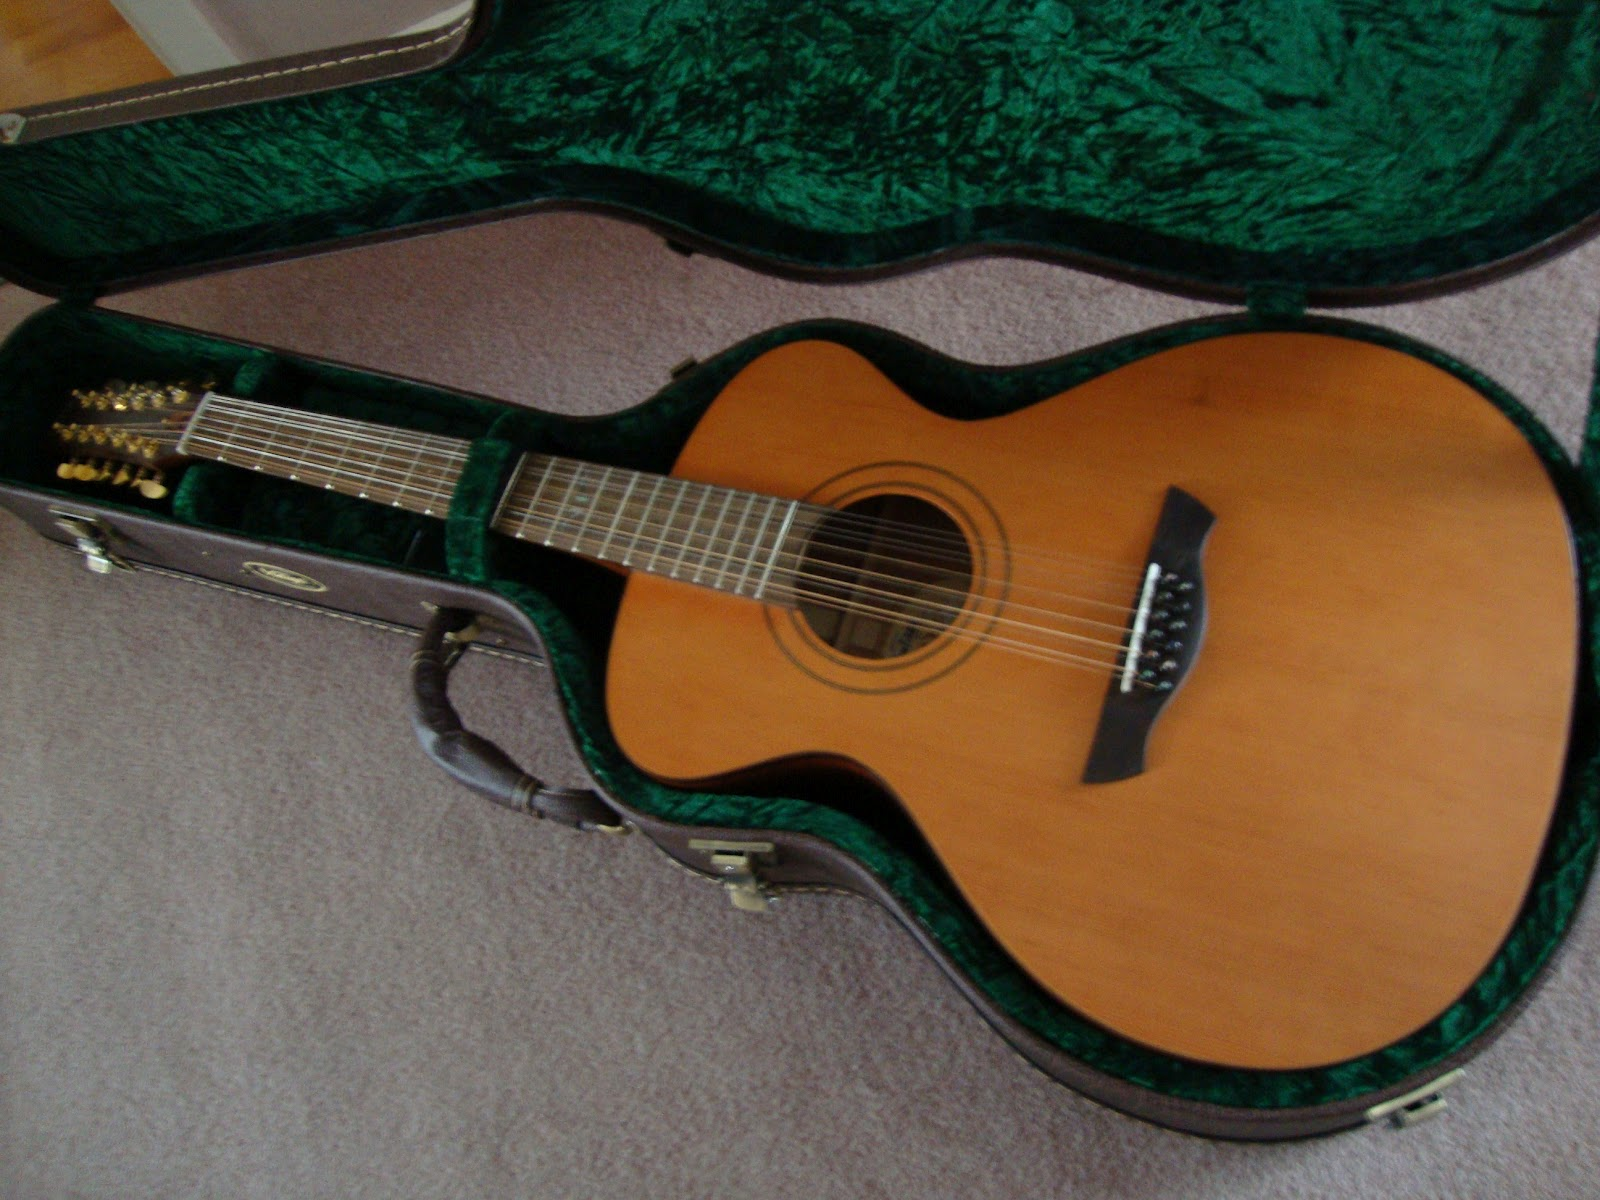 Goodall Guitars – Acoustic Excellence